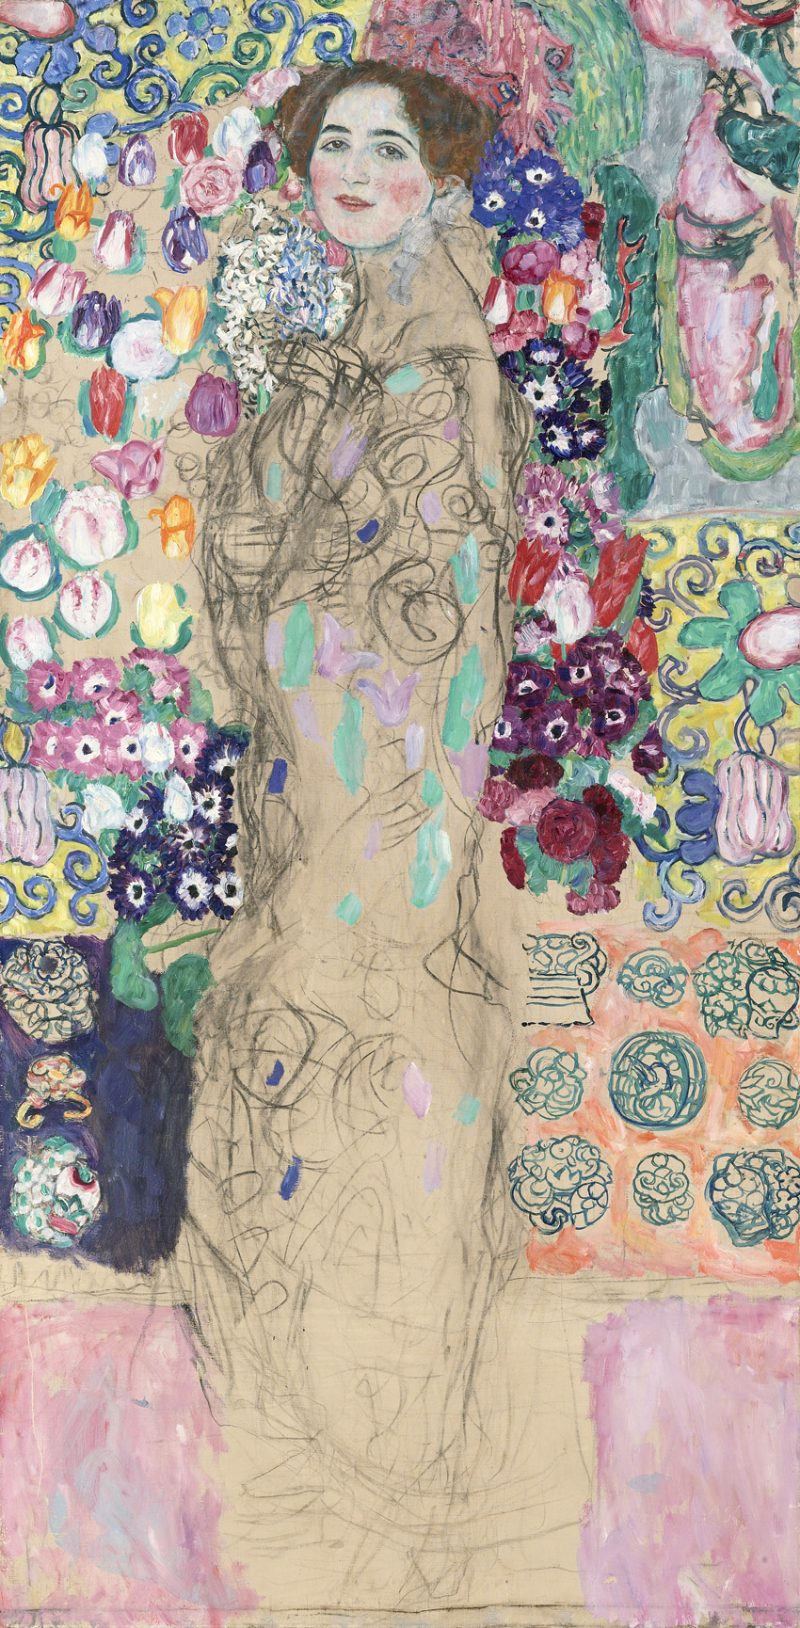 """""""Posthumous Portrait of Ria Munk III"""" (1917-18) by Gustav Klimt is shown in this handout photo released to the media on Sept. 3, 2013. It is part of """"Facing the Modern: The Portrait in Vienna 1900,"""" an exhibition at the National Gallery. Source: The Lewis Collection/National Gallery via Bloomberg"""